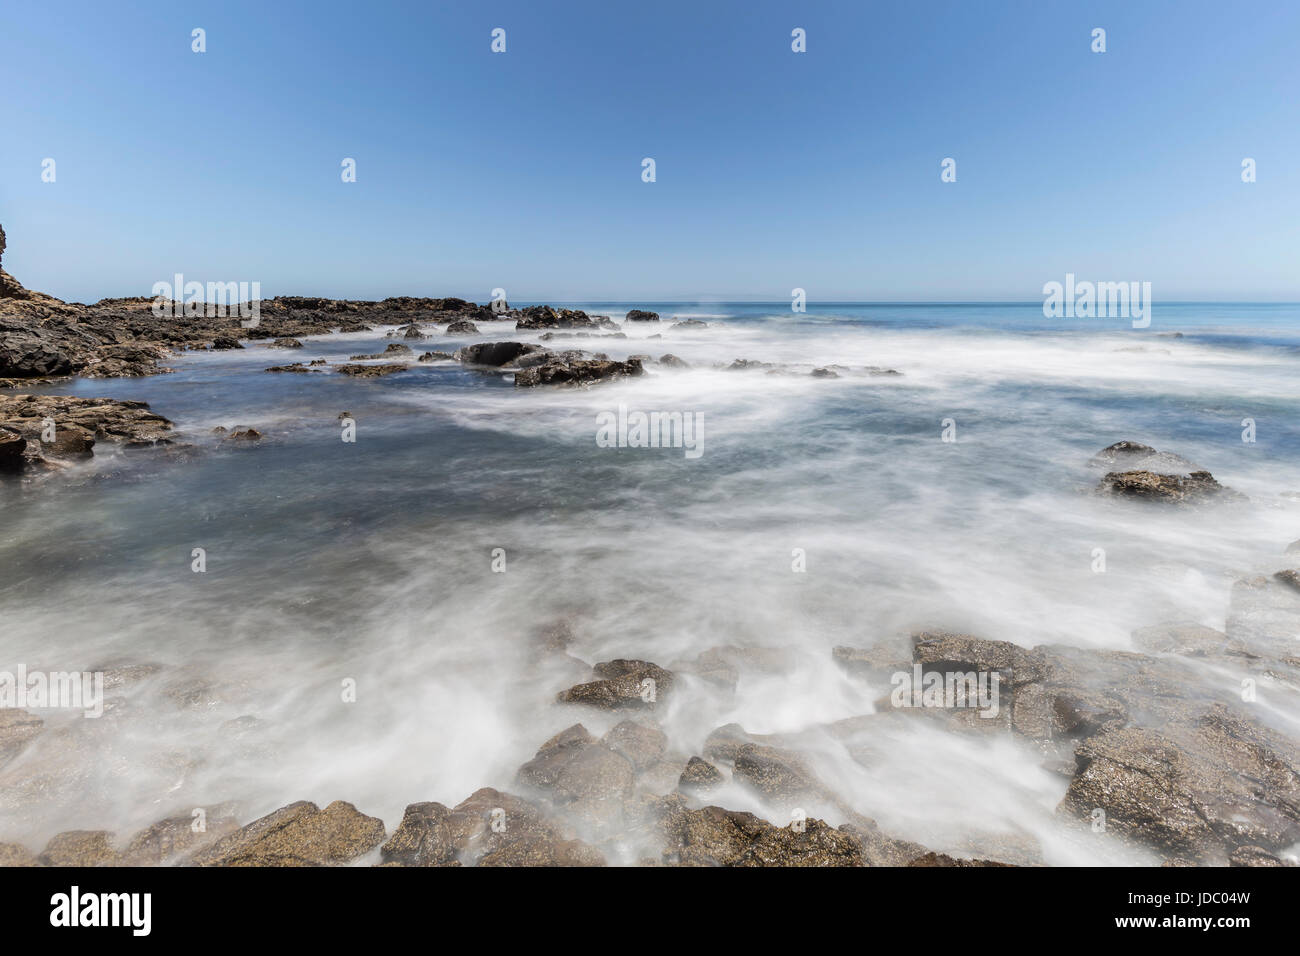 Pacific wave motion blur at Abalone Cove Shoreline Park in Southern California. - Stock Image